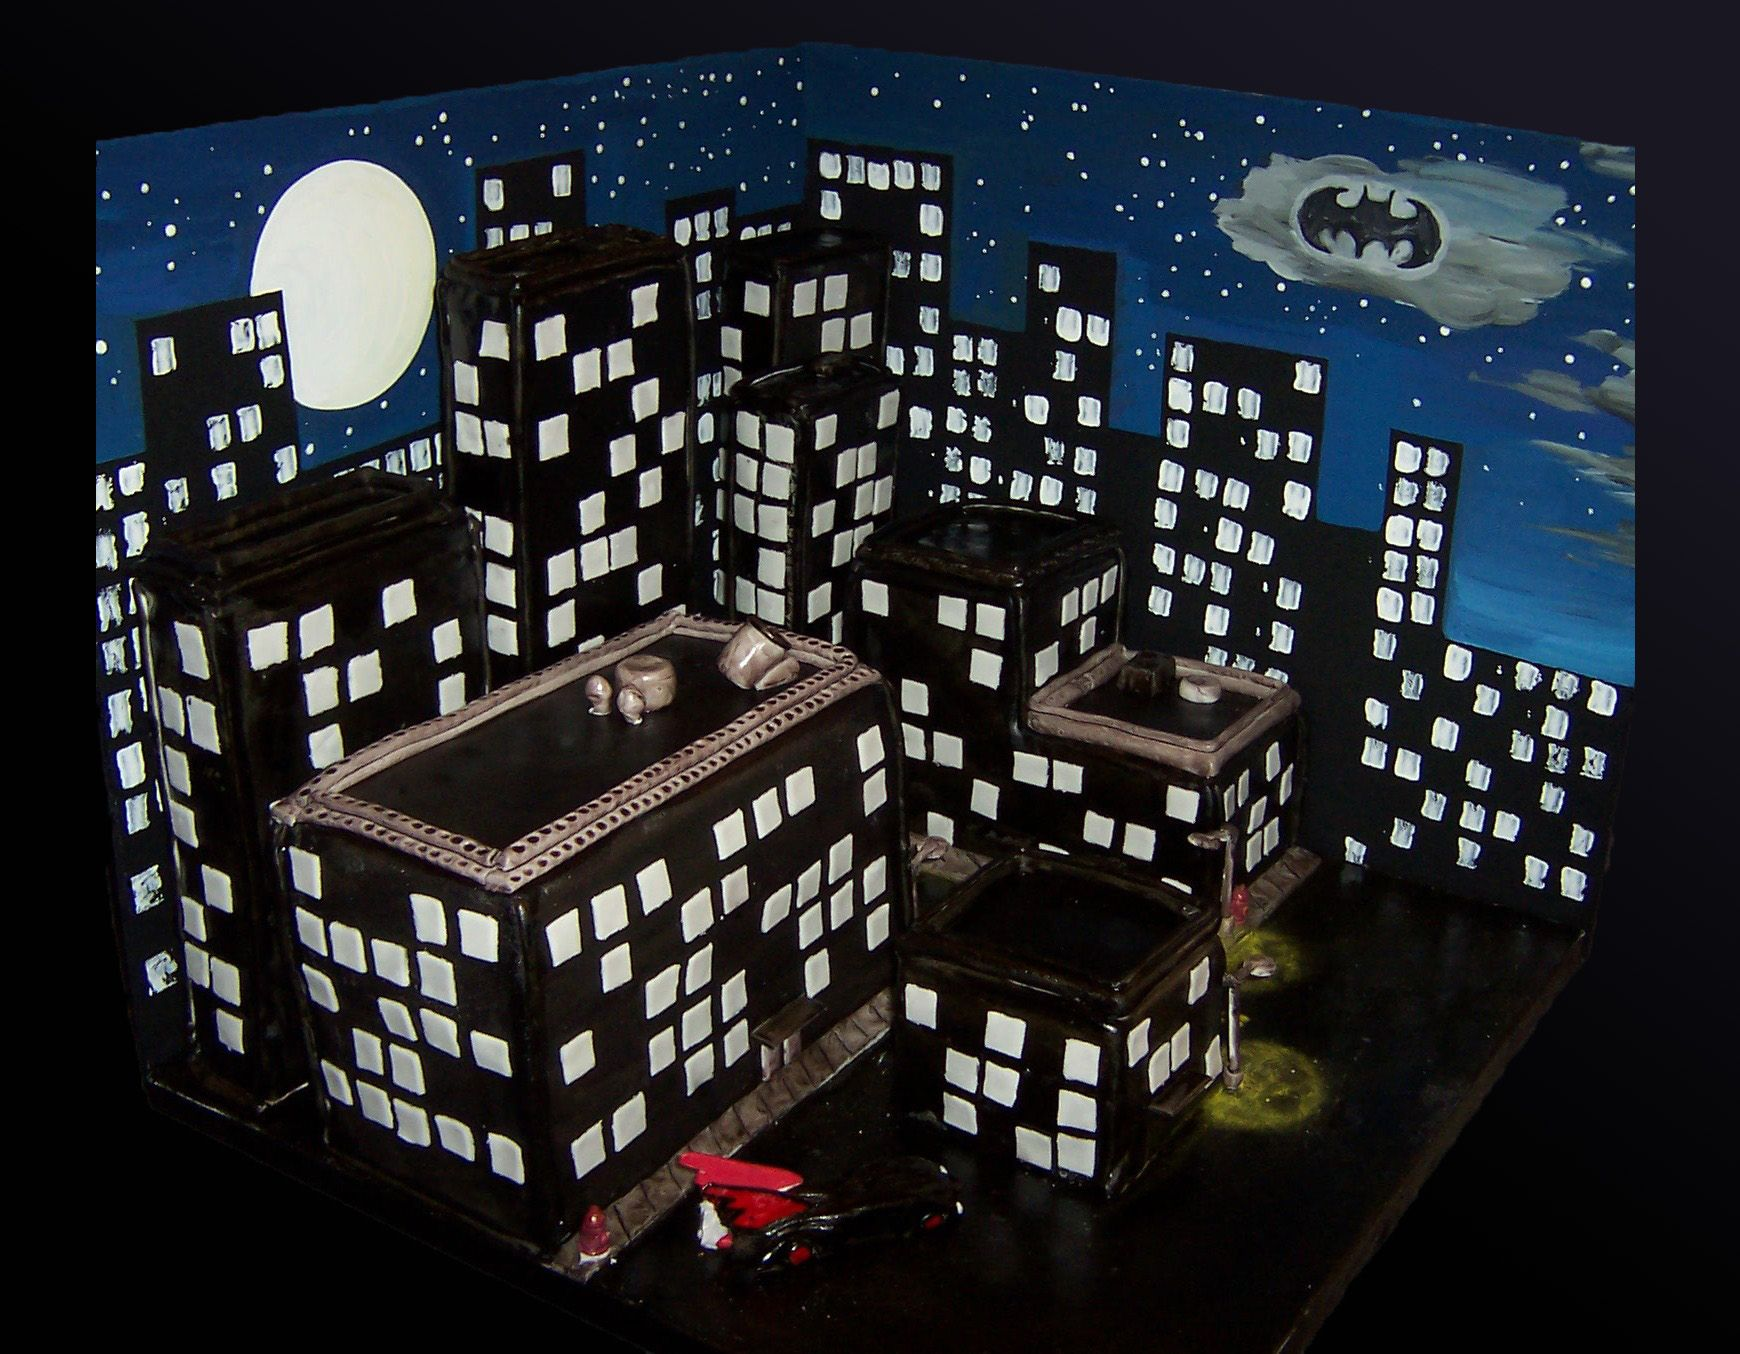 Superheroes Cakes Gotham City With All Edible Buildings